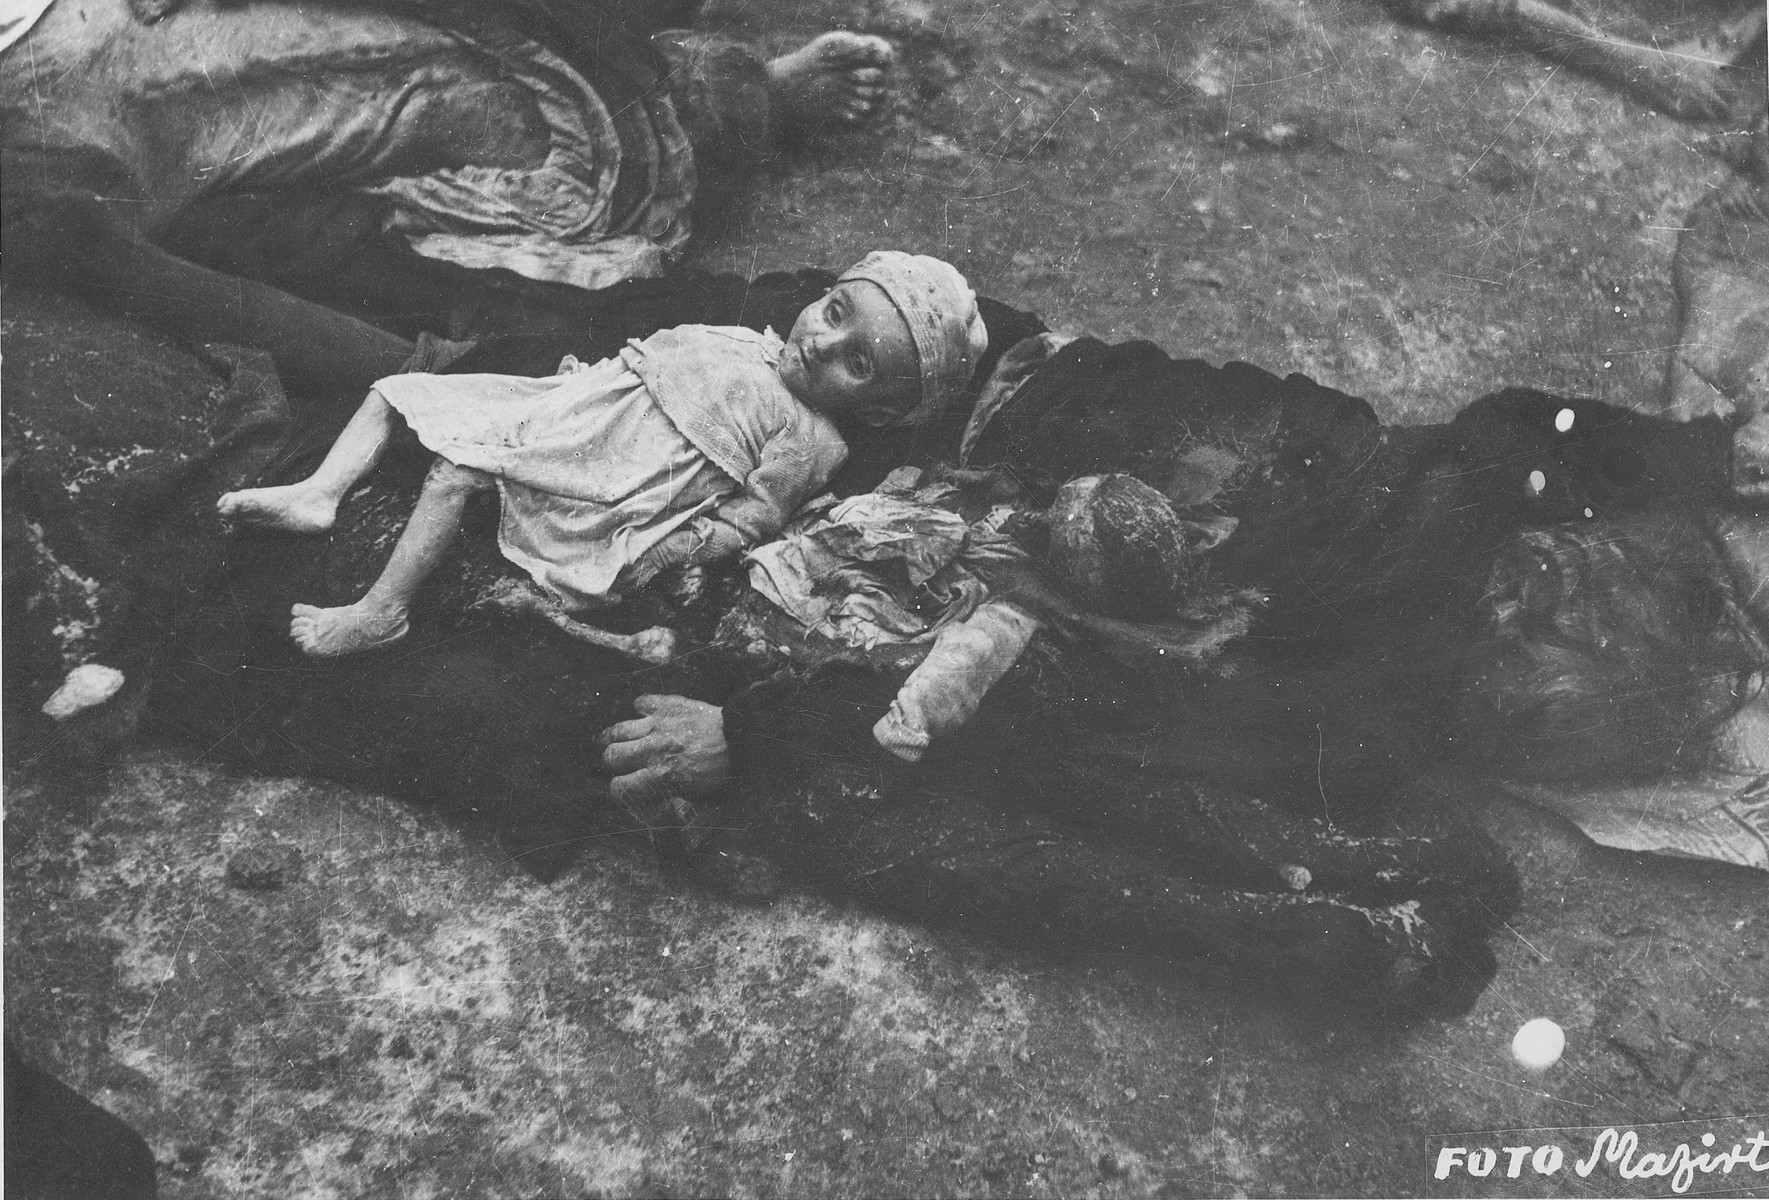 Corpses of Jewish children in the courtyard of the Dohany Street Synagogue.  During the last few months of the war in Hungary, the Nyilas (Arrow Cross) exploited the anarchic conditions in the areas still under their control to continue their excesses against the Jews.  This was particularly true in Budapest, despite the fact that the Soviet army had completely encircled the city by December 27, 1944.  The reign of terror that had begun with Szalaszi's assumption of power on October 15, 1944, went almost completely unchecked after the beginning of the Soviet siege on December 9.  Gangs of armed Nyilas--mostly teenagers--roamed the city hunting for Jews in hiding.  They searched them out in hospitals, shelters, homes outside the ghetto, in the International Ghetto, and in the large ghetto.  After robbing the Jews of their remaining valuables, the Nyilas shot them on the spot or marched them to the banks of the Danube, where they shot them, and threw their bodies into the river.  A large number of Jews who were murdered in the ghetto were buried in mass graves in the courtyard of the Dohany Street Synagogue.  The most horrific of these attacks occurred on the Pest side of the capital, at the two Jewish hospitals located on Maros and Varosmajor streets.  The Maros Street hospital, which had operated under the protection of the International Red Cross during the German occupation, was attacked on January 11, 1945.  After the initial melee, during which Nyilas gang members wantonly destroyed hospital equipment, threw patients out of their beds and trampled them, and murdered staff members, survivors were ordered to dig a mass grave, remove and bury the bodies.  They were then shot and buried in the grave themselves.  Only one nurse survived of the 92 people that were in the hospital at the time.  Three days later, on January 14, the hospital on Varosmajor Street was attacked, resulting in the deaths of 150 patients and medical staff.  These manhunts and massacres continu